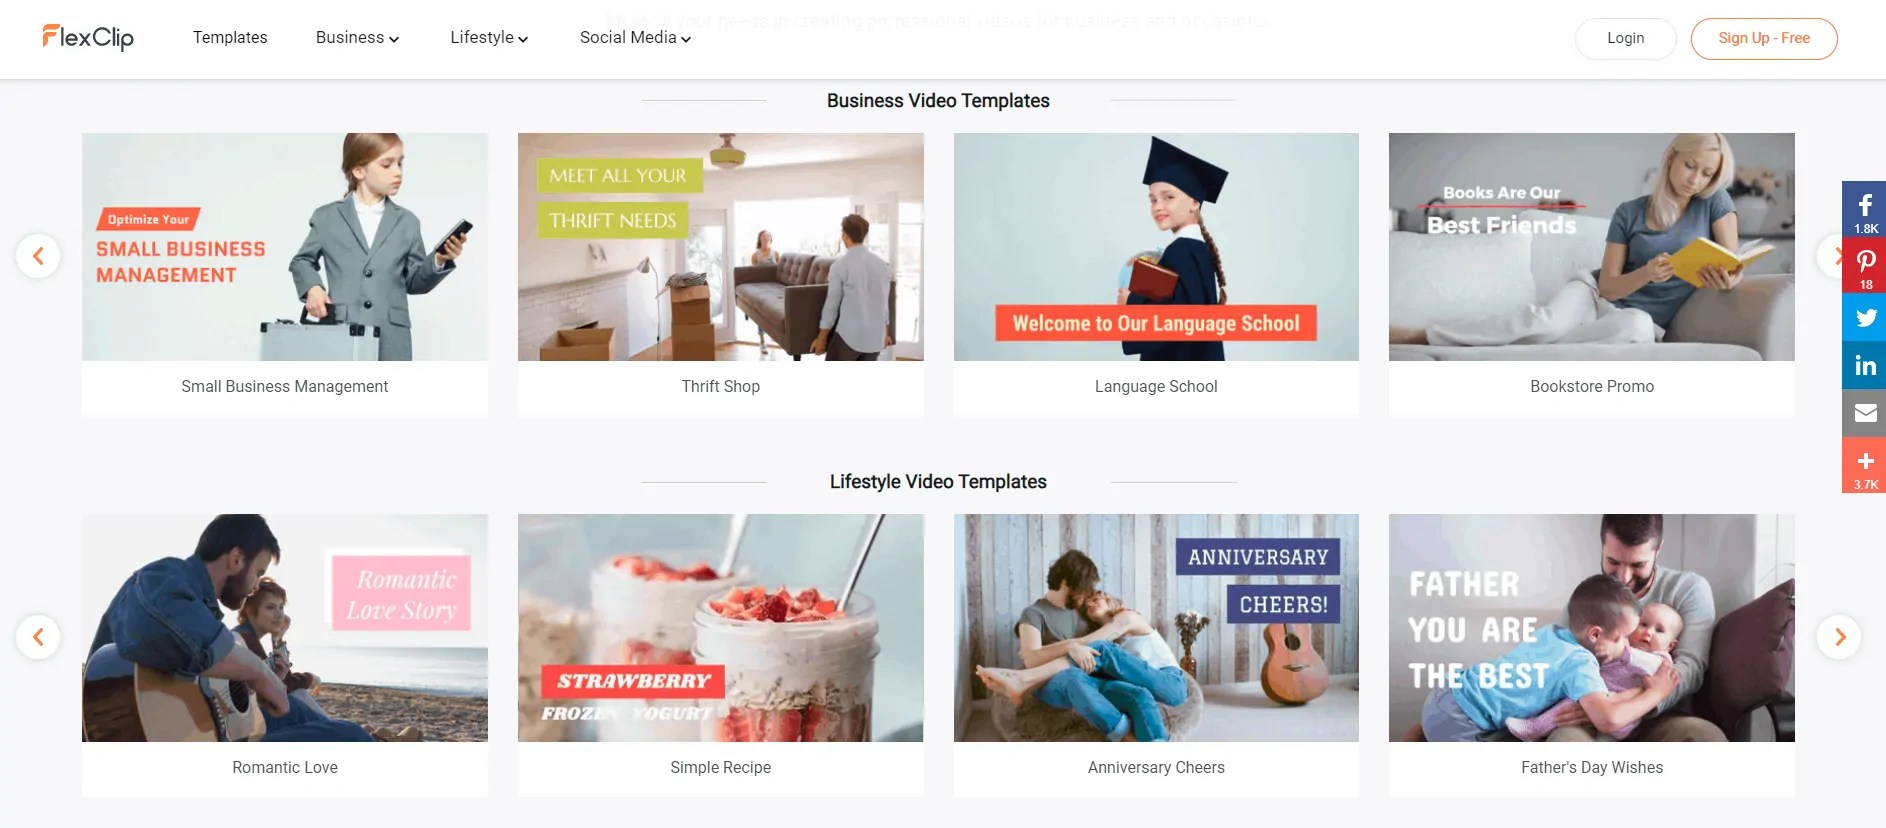 FlexClip Video Maker Review: Create Advanced Marketing Videos for Beginners 1